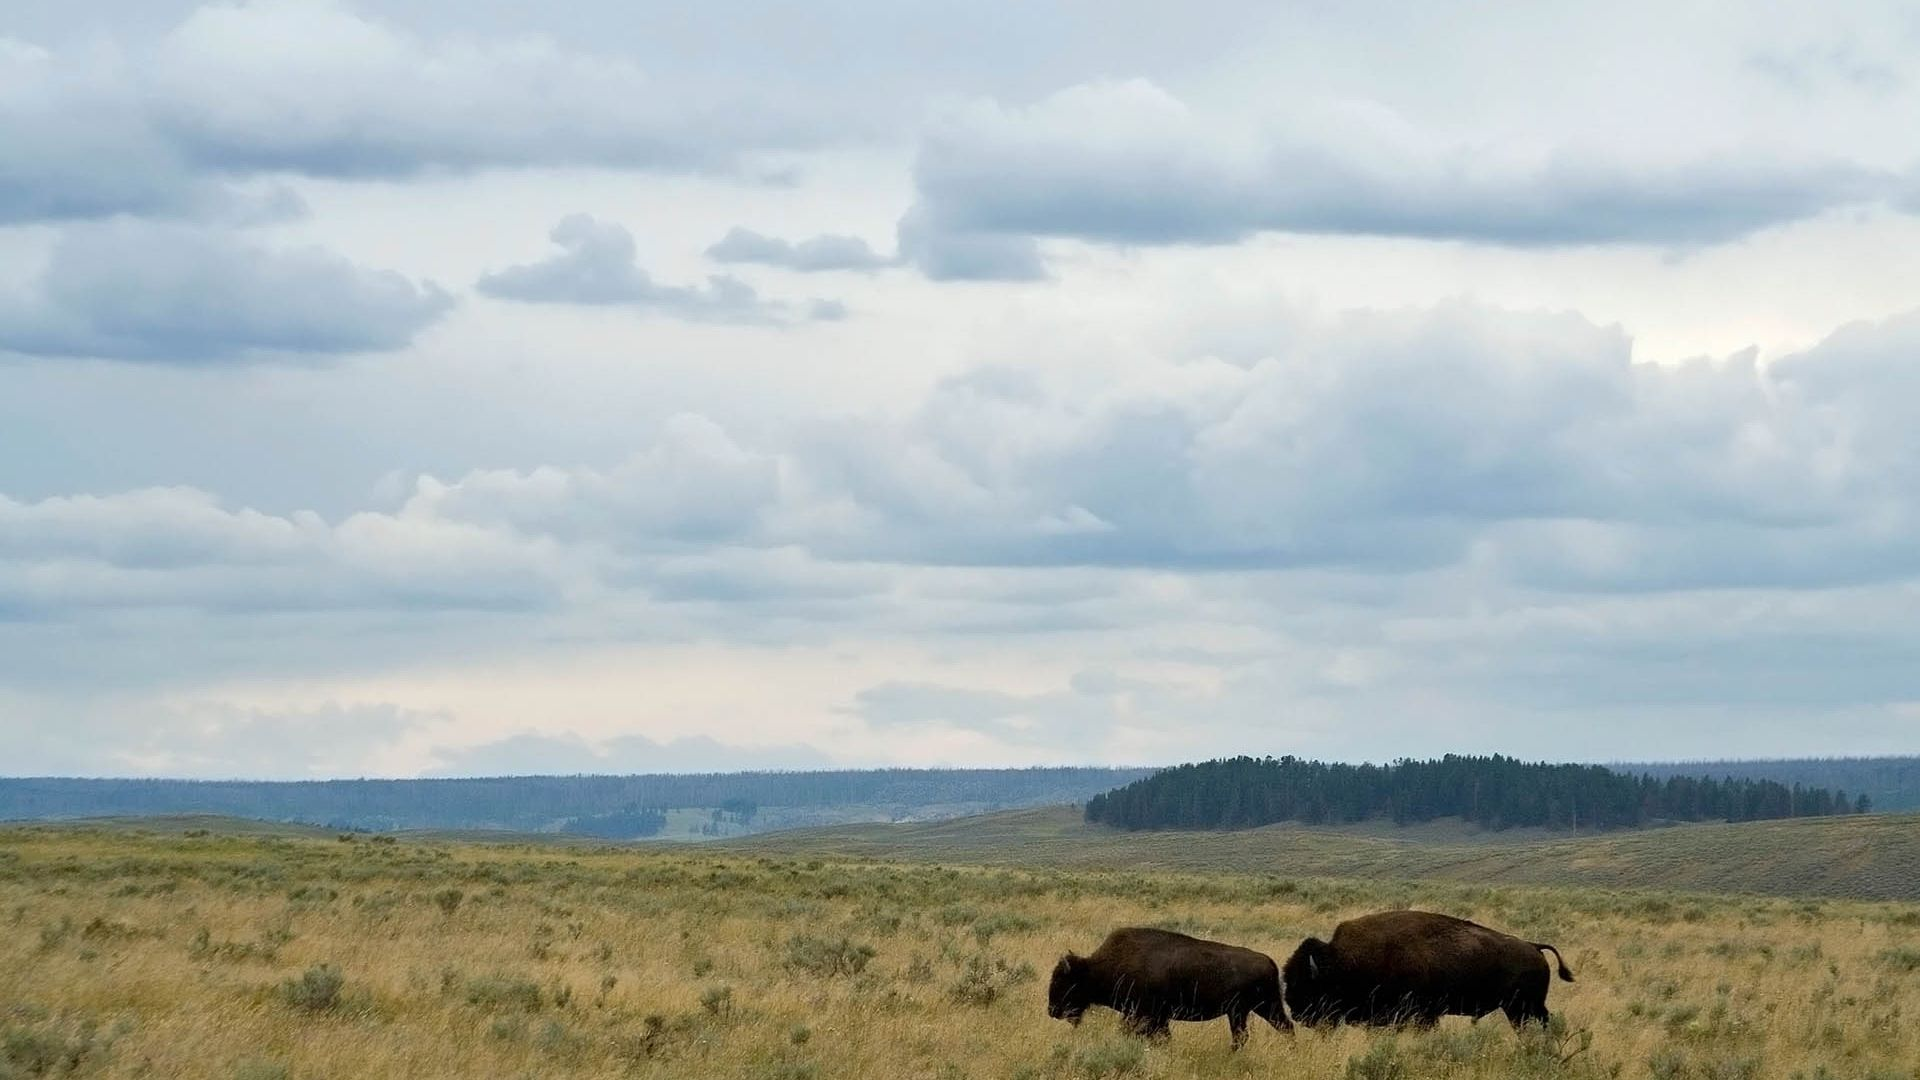 Bison In The Desert Pictures